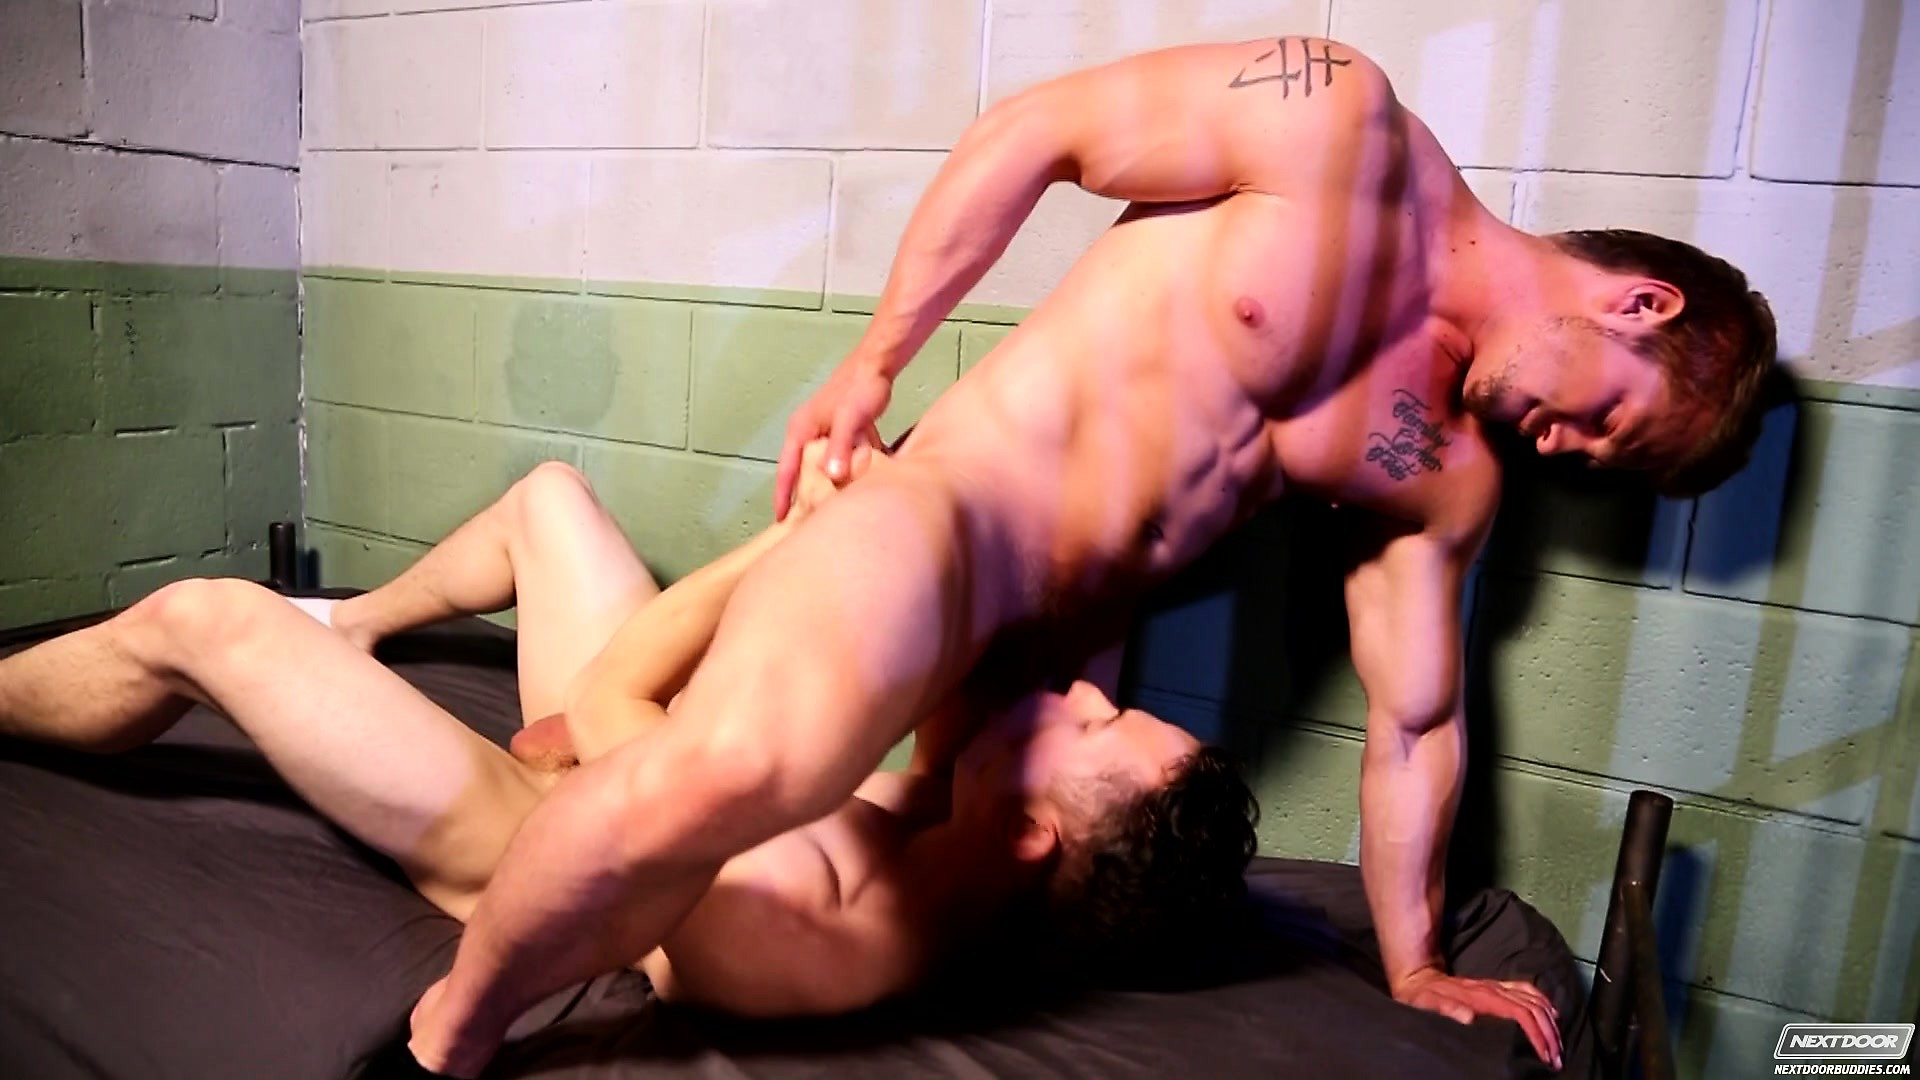 Gay sex in prison free movies